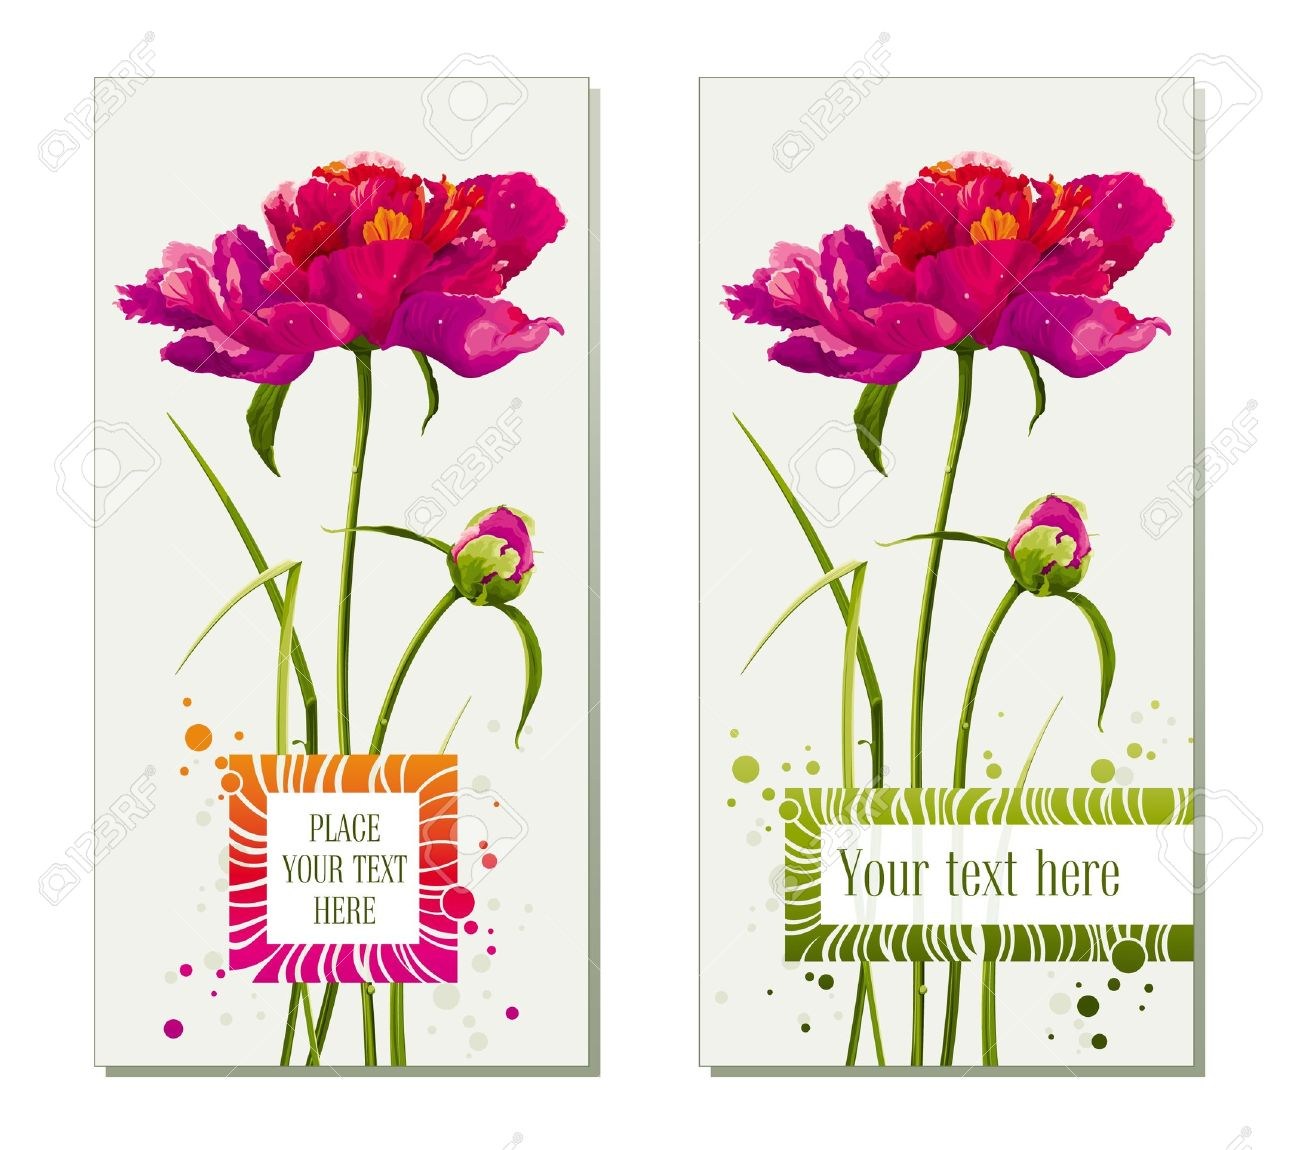 Floral Greeting Cards With Red Peony Flower And Bud Stock Vector